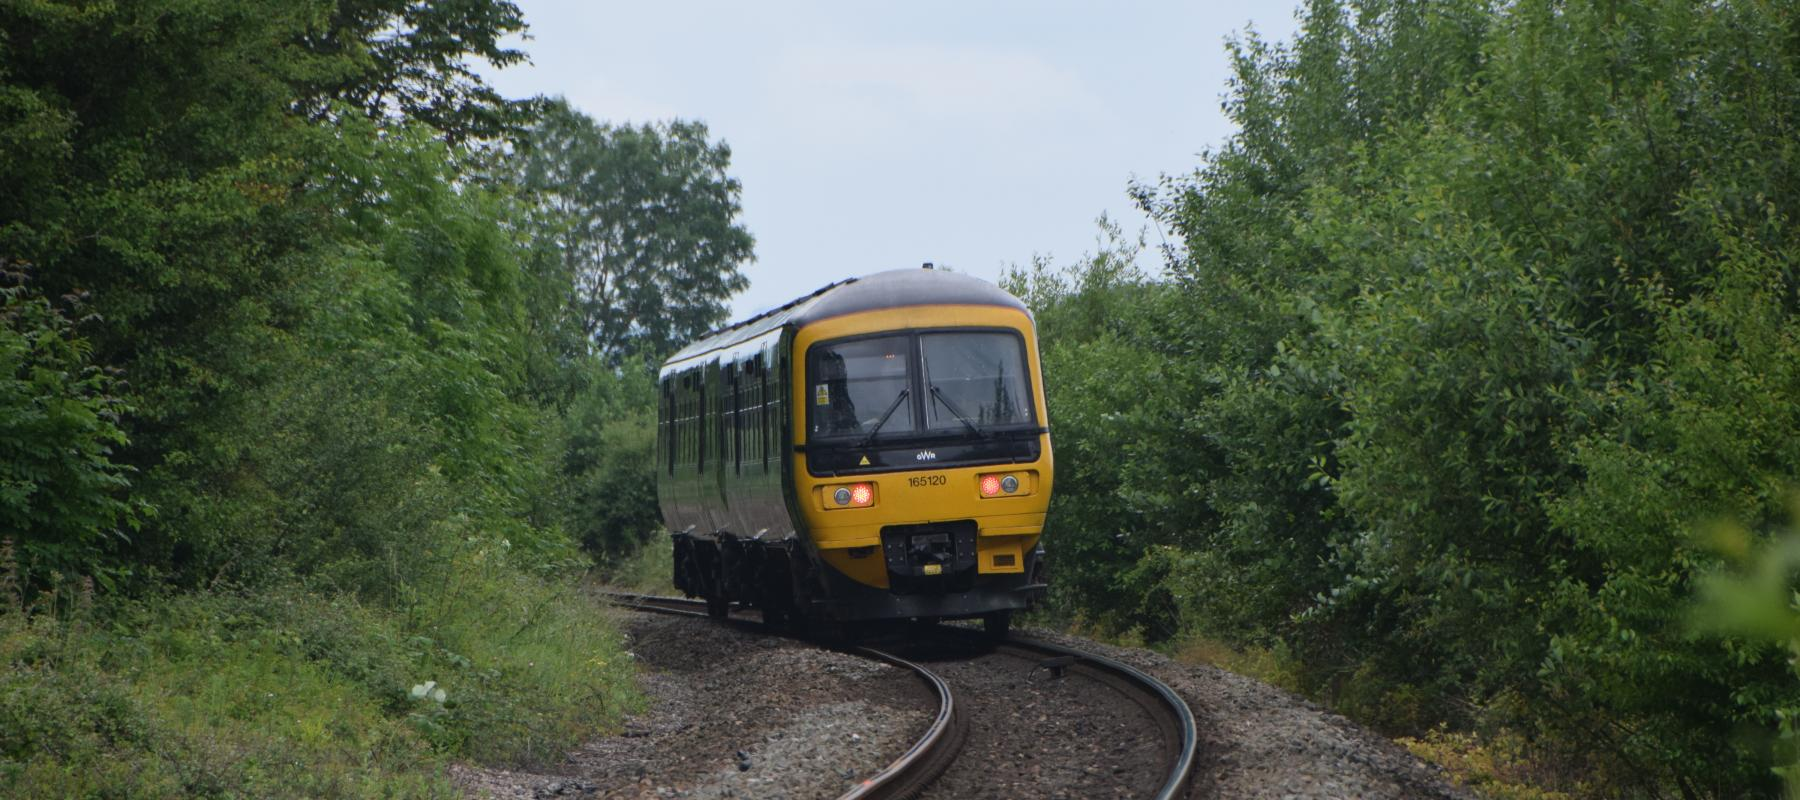 Travelling along the TransWilts Line